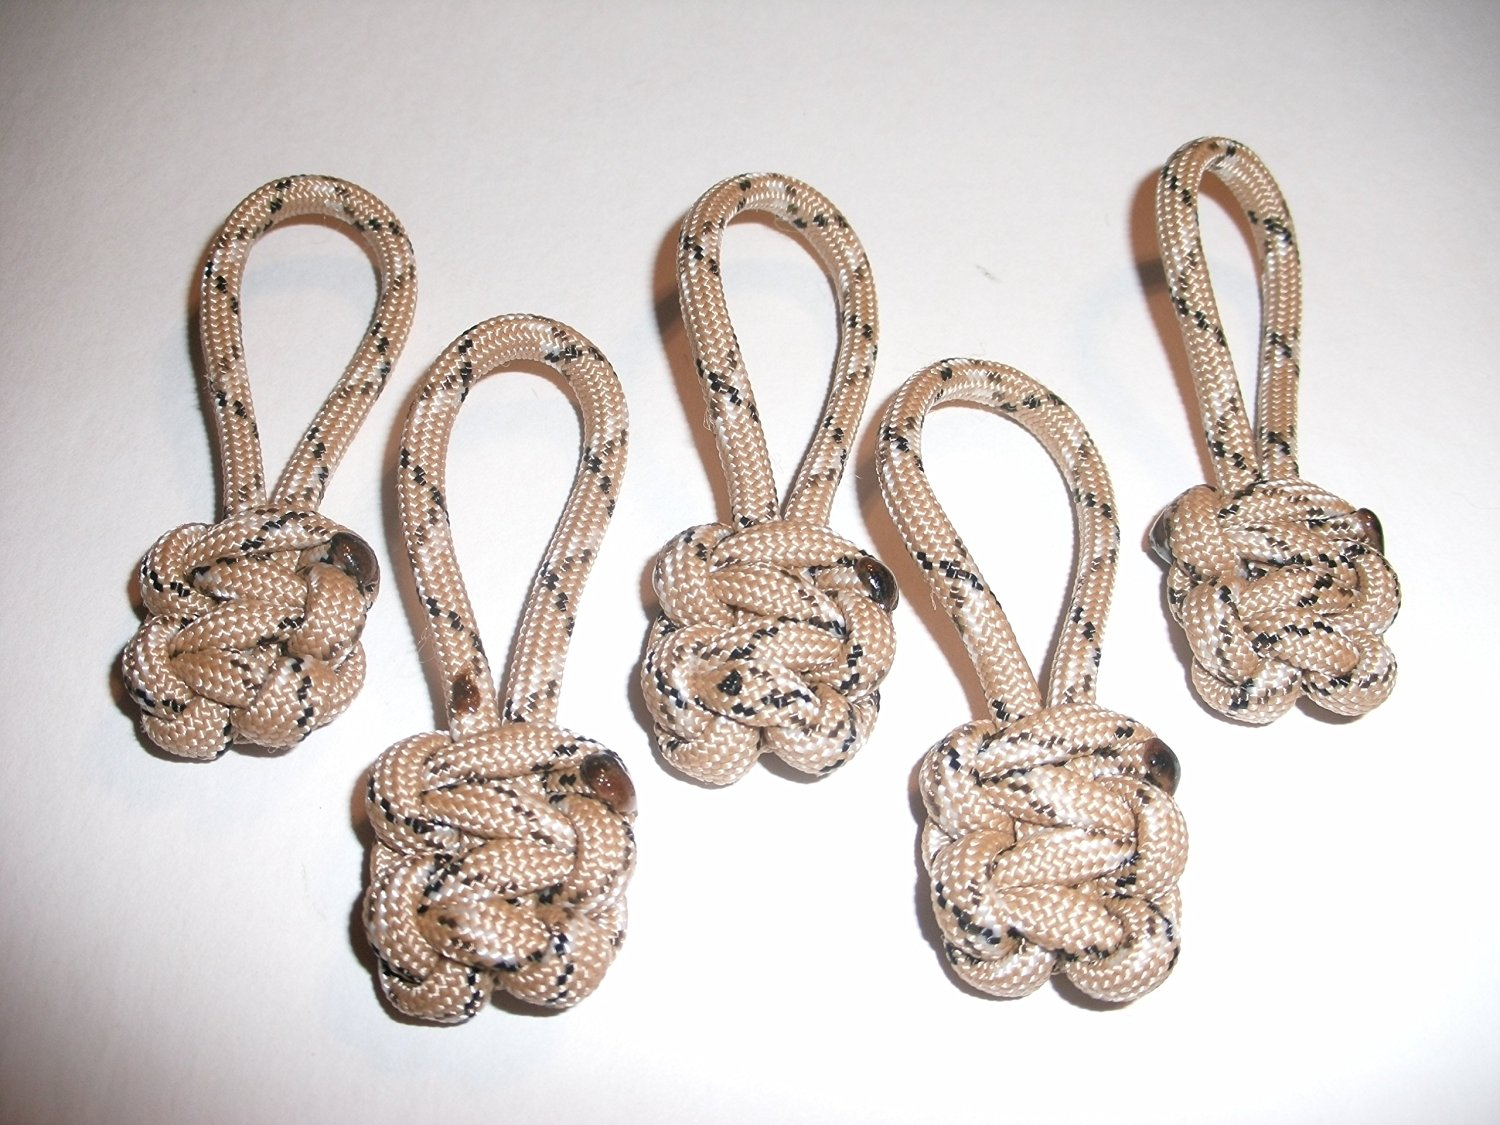 RedVex Paracord Zipper Pulls / Lanyards - Lot of 5 - ~2.5 - Desert Camo